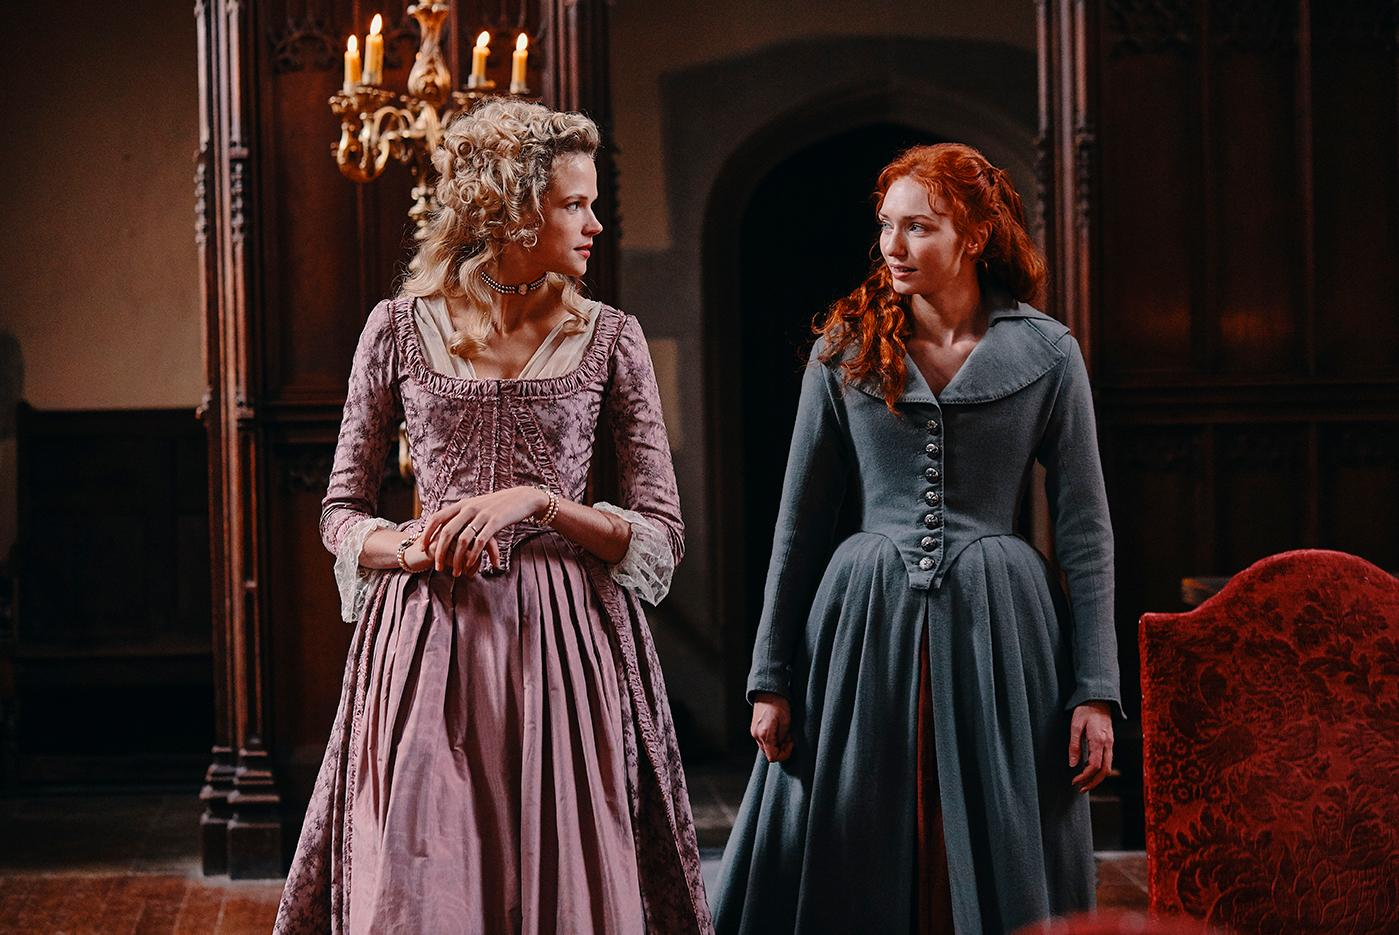 Gabriella Wilde as Caroline and Eleanor Tomlinson as Demelza in Poldark. Photo: Mammoth Screen for BBC and MASTERPIECE